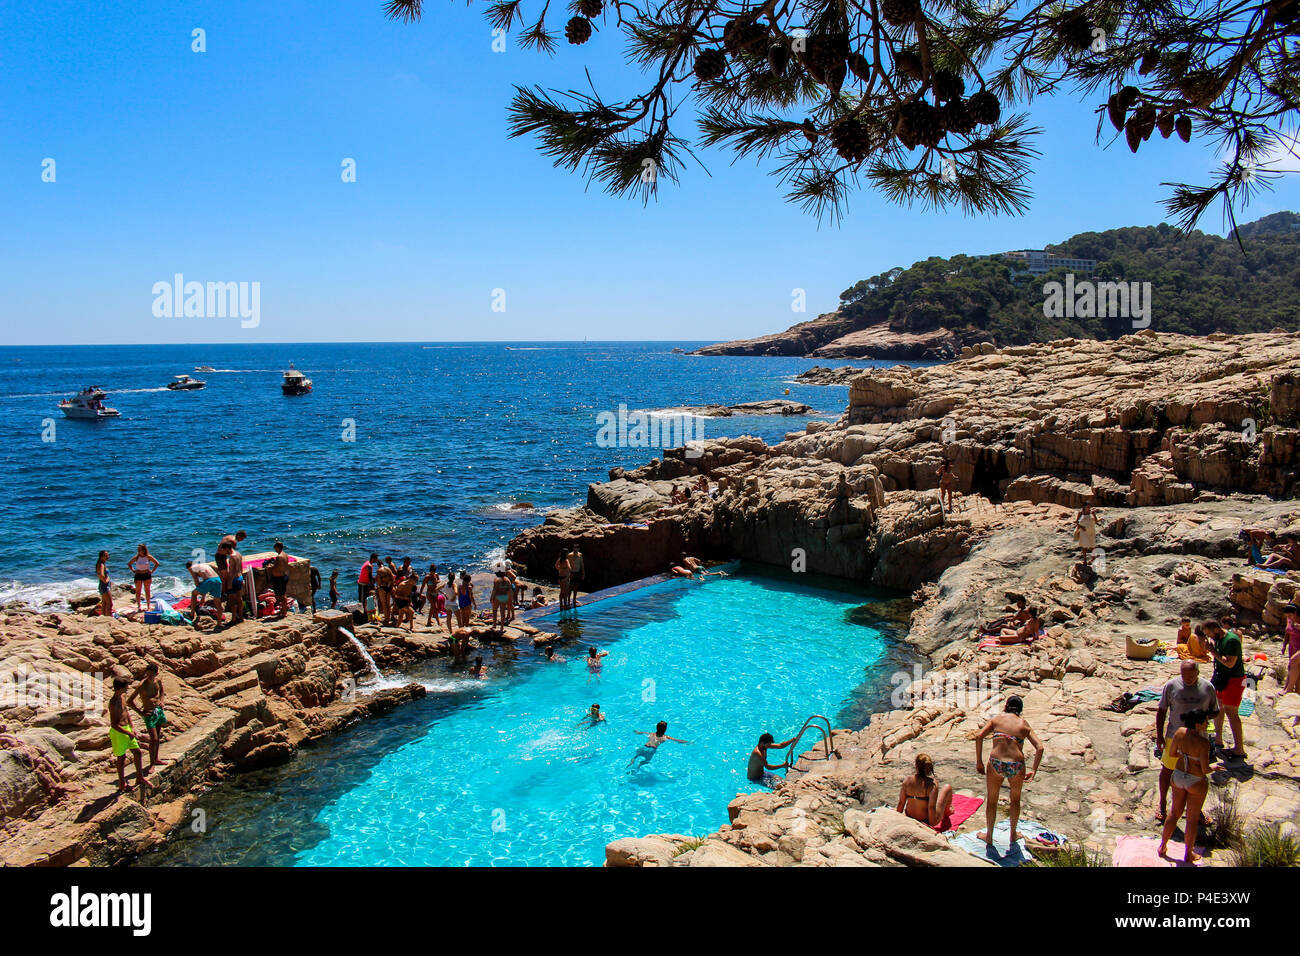 Girona spain august 13 2016 tourists bathing in a for Piscina natural costa brava